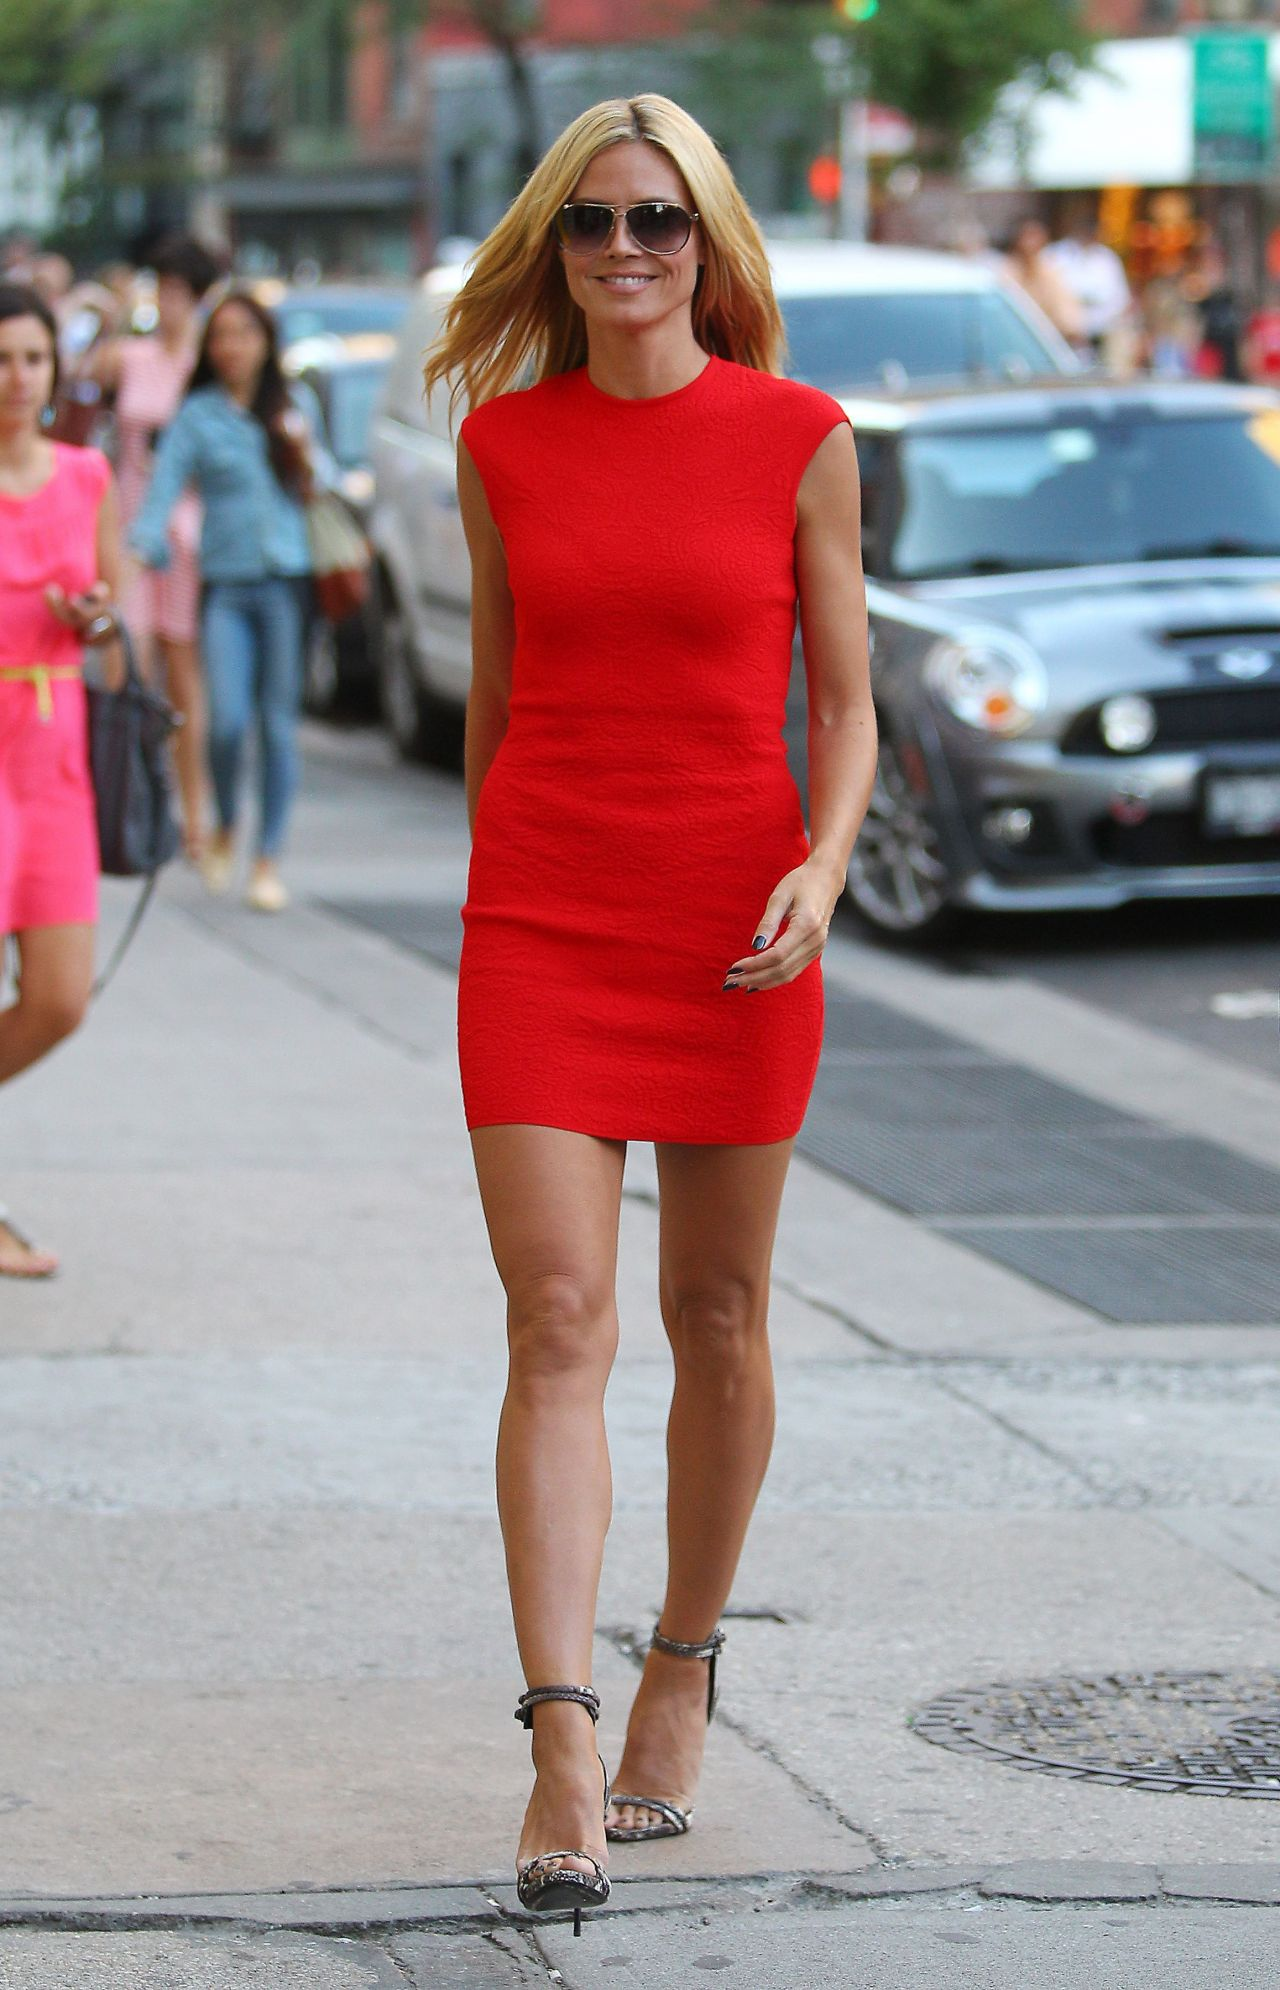 Heidi Klum In Red Dress Out In New York City June 2014